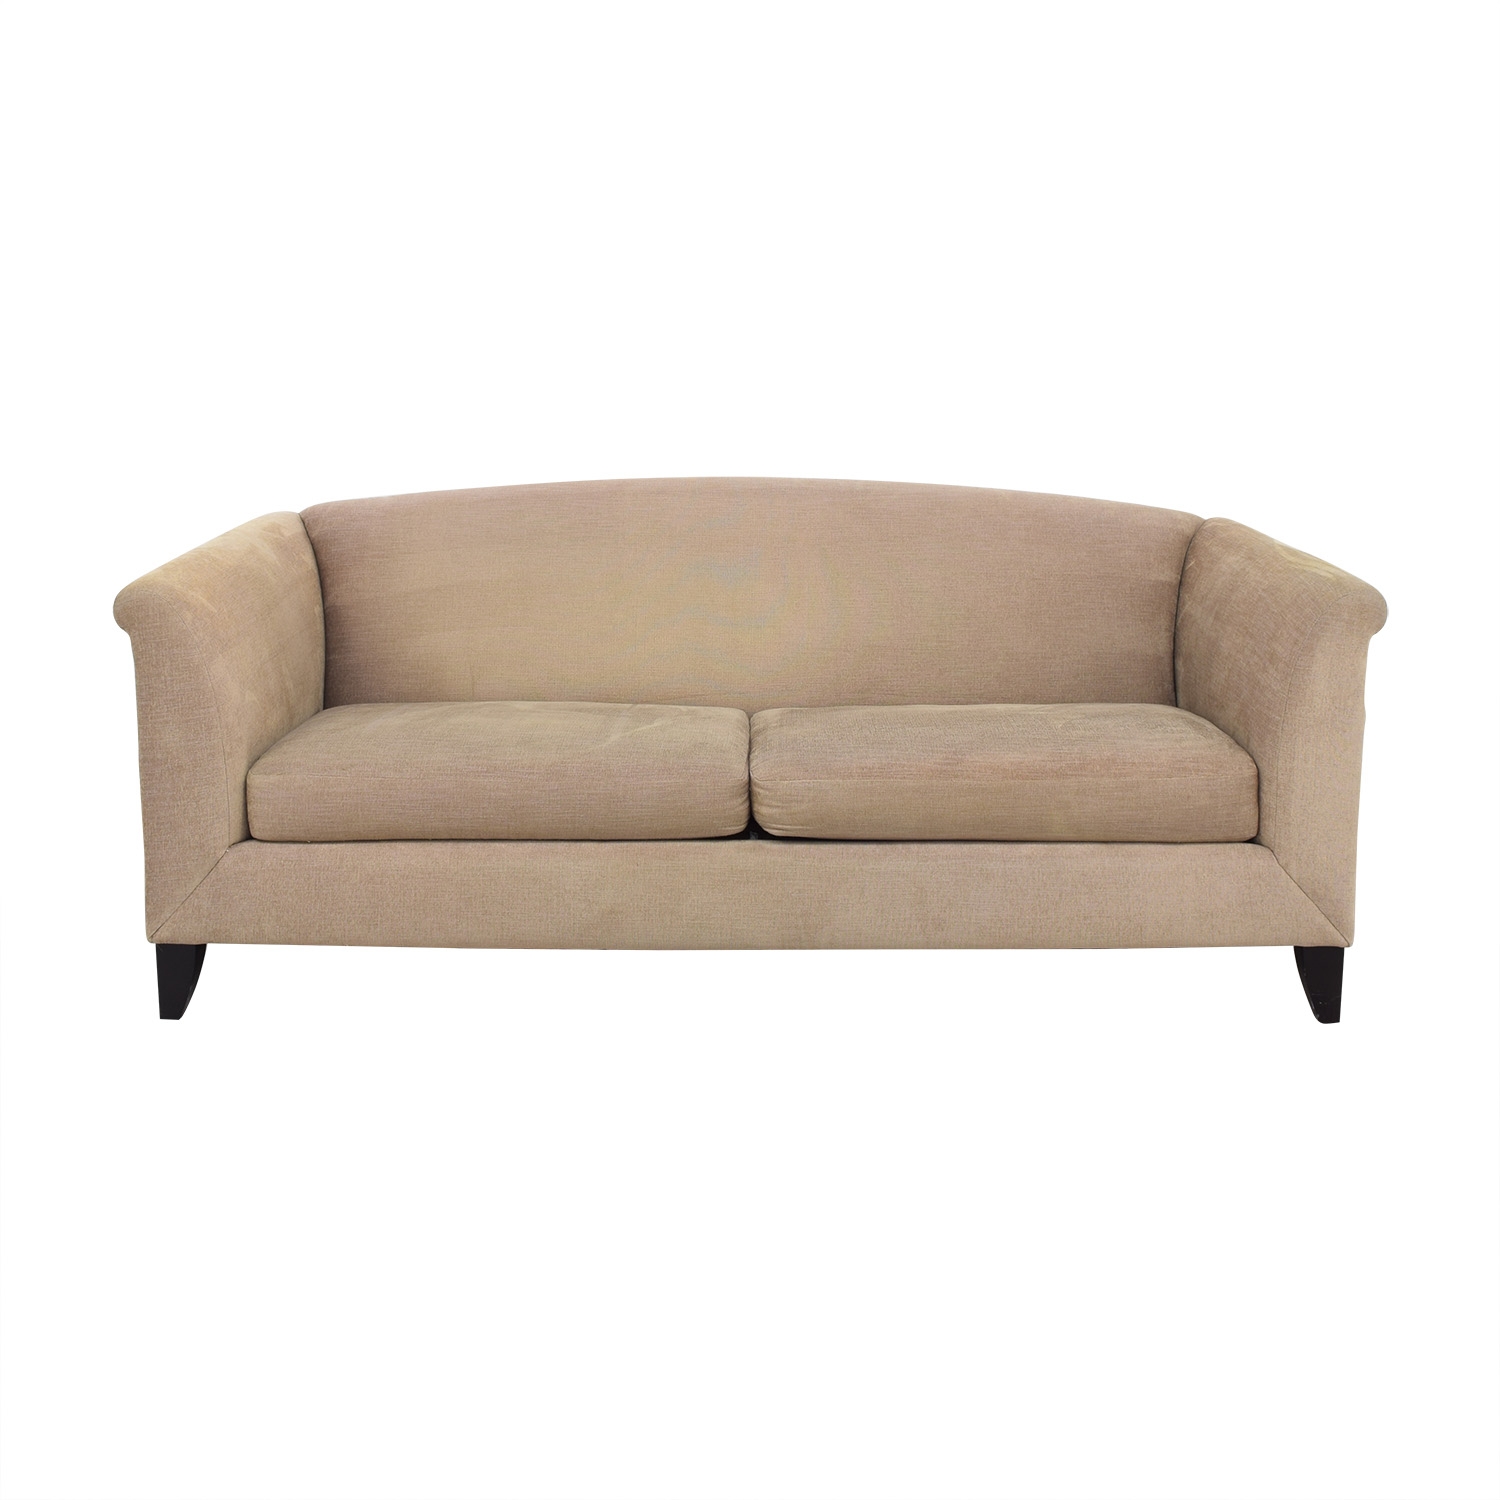 Crate & Barrel Crate & Barrel Modern Sofa ct